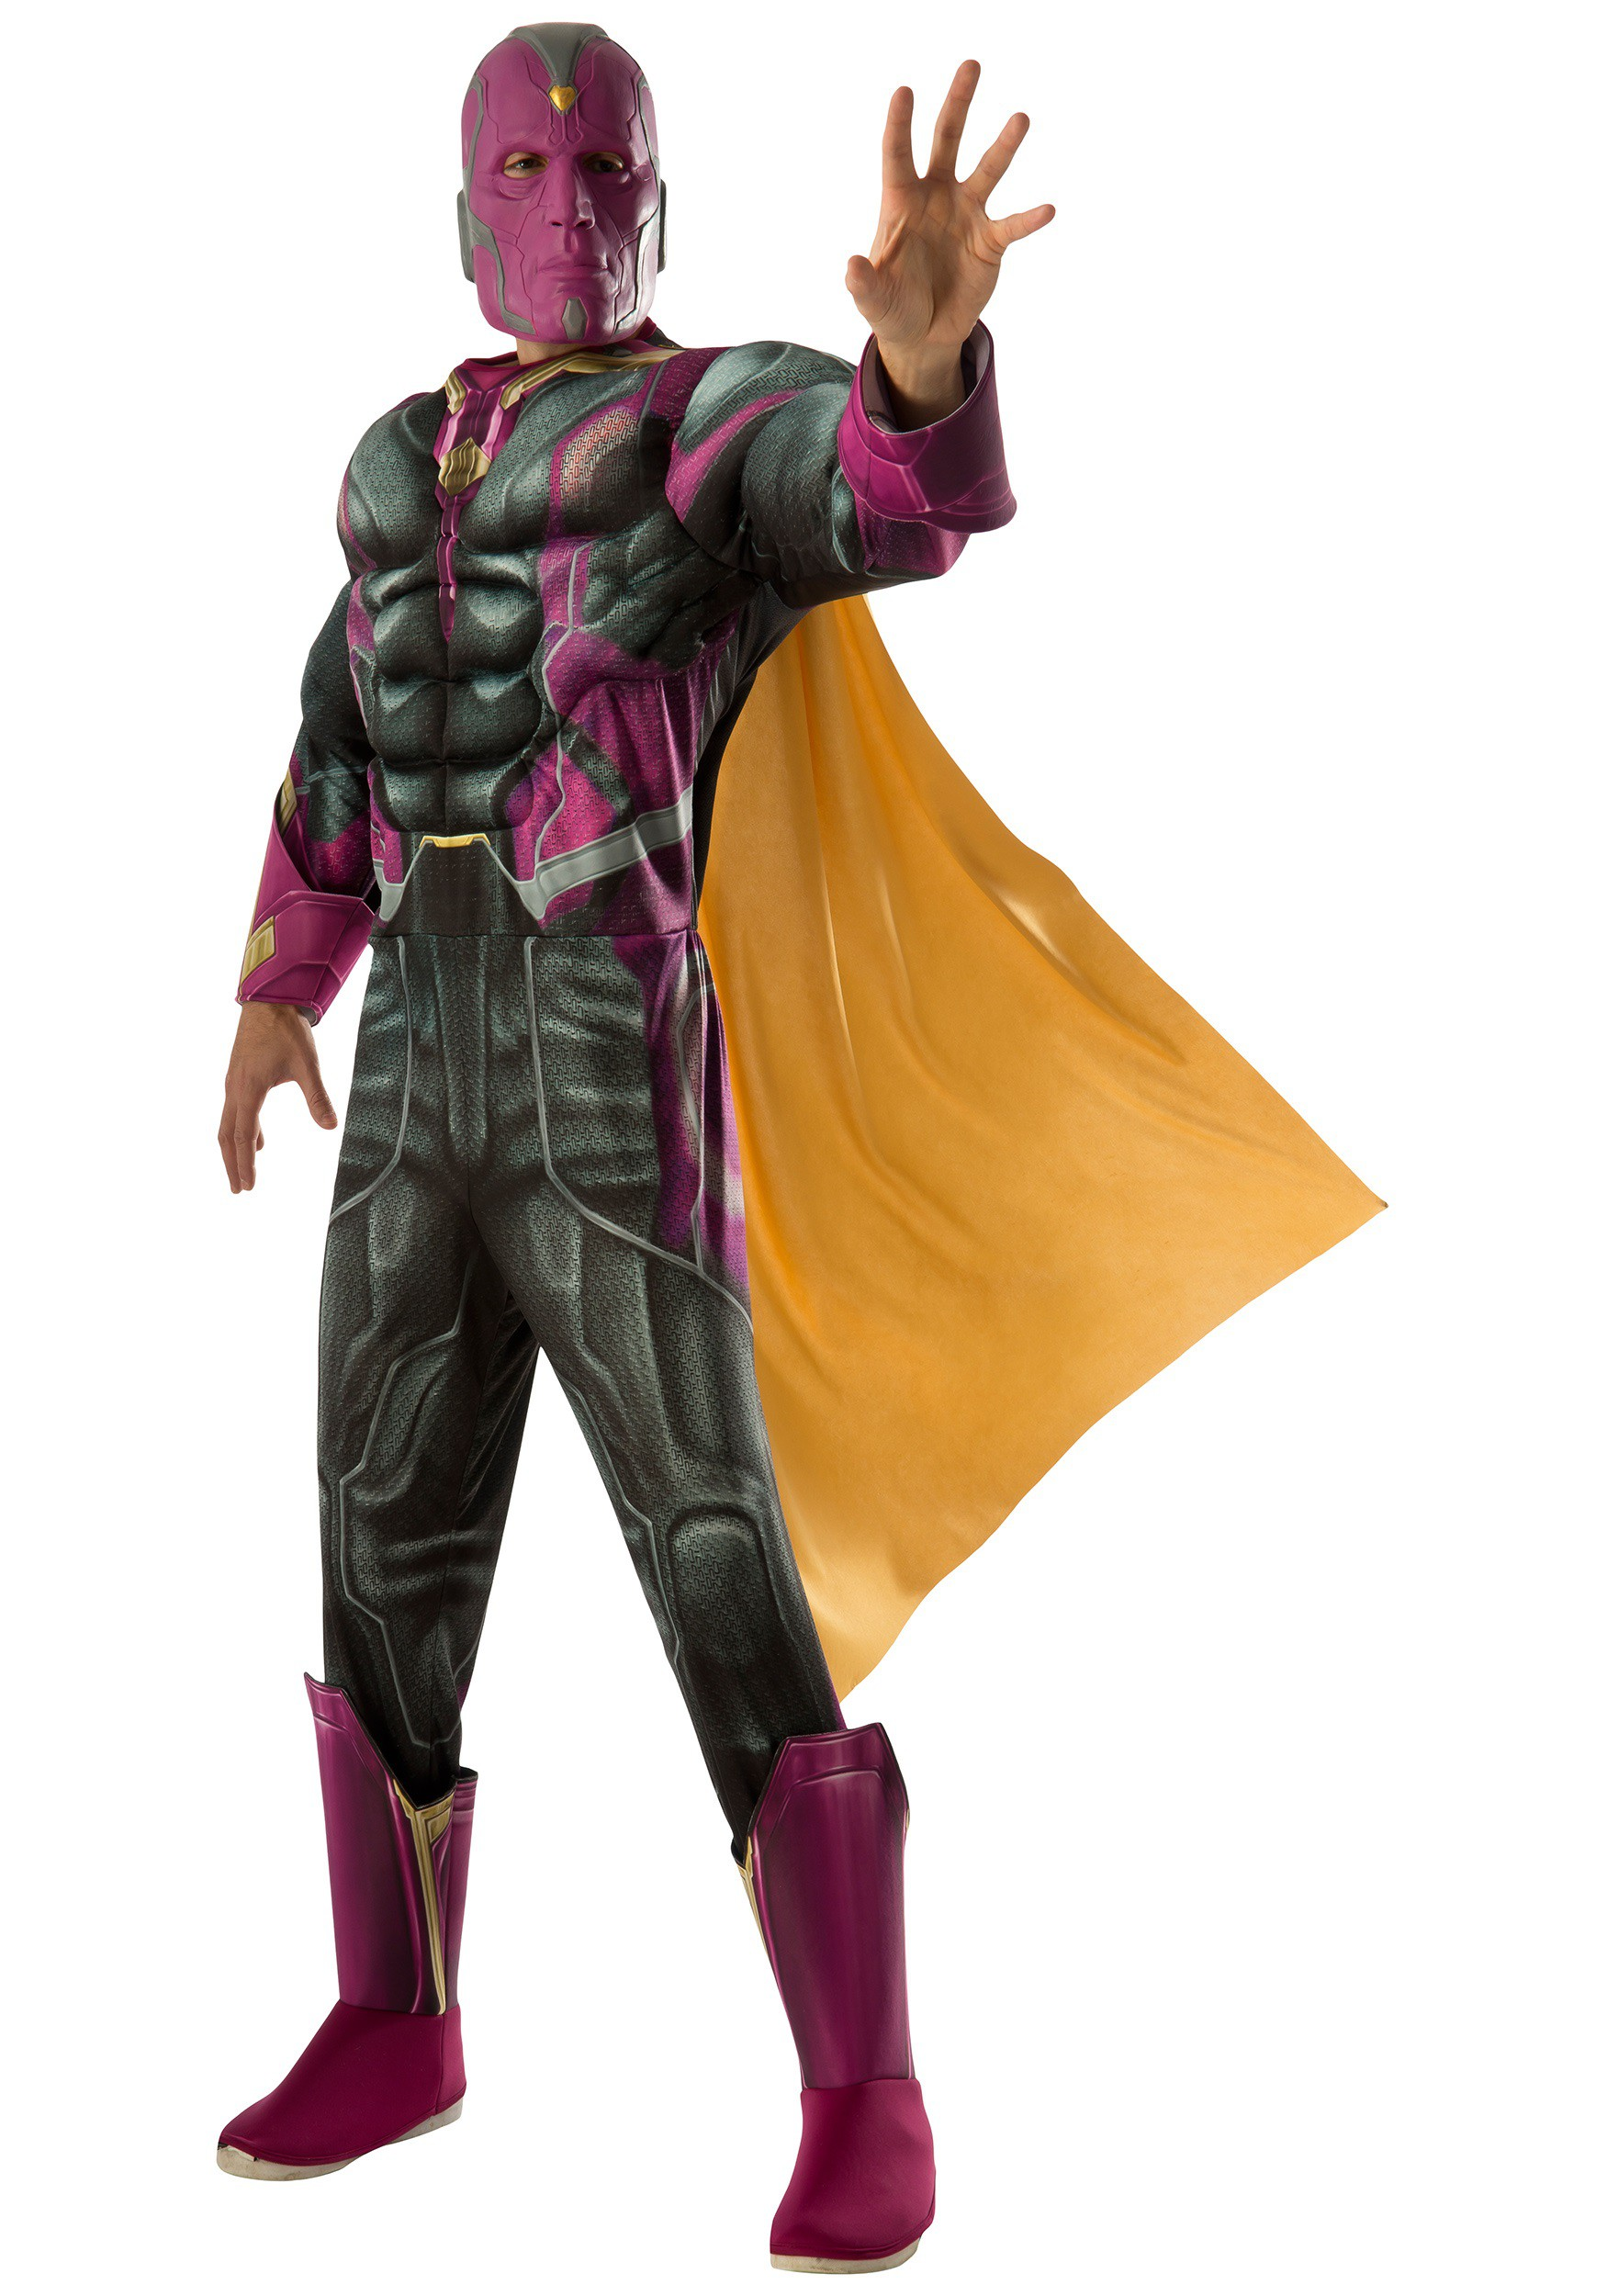 Adult Deluxe Vision Avengers 2 Costume RU810305